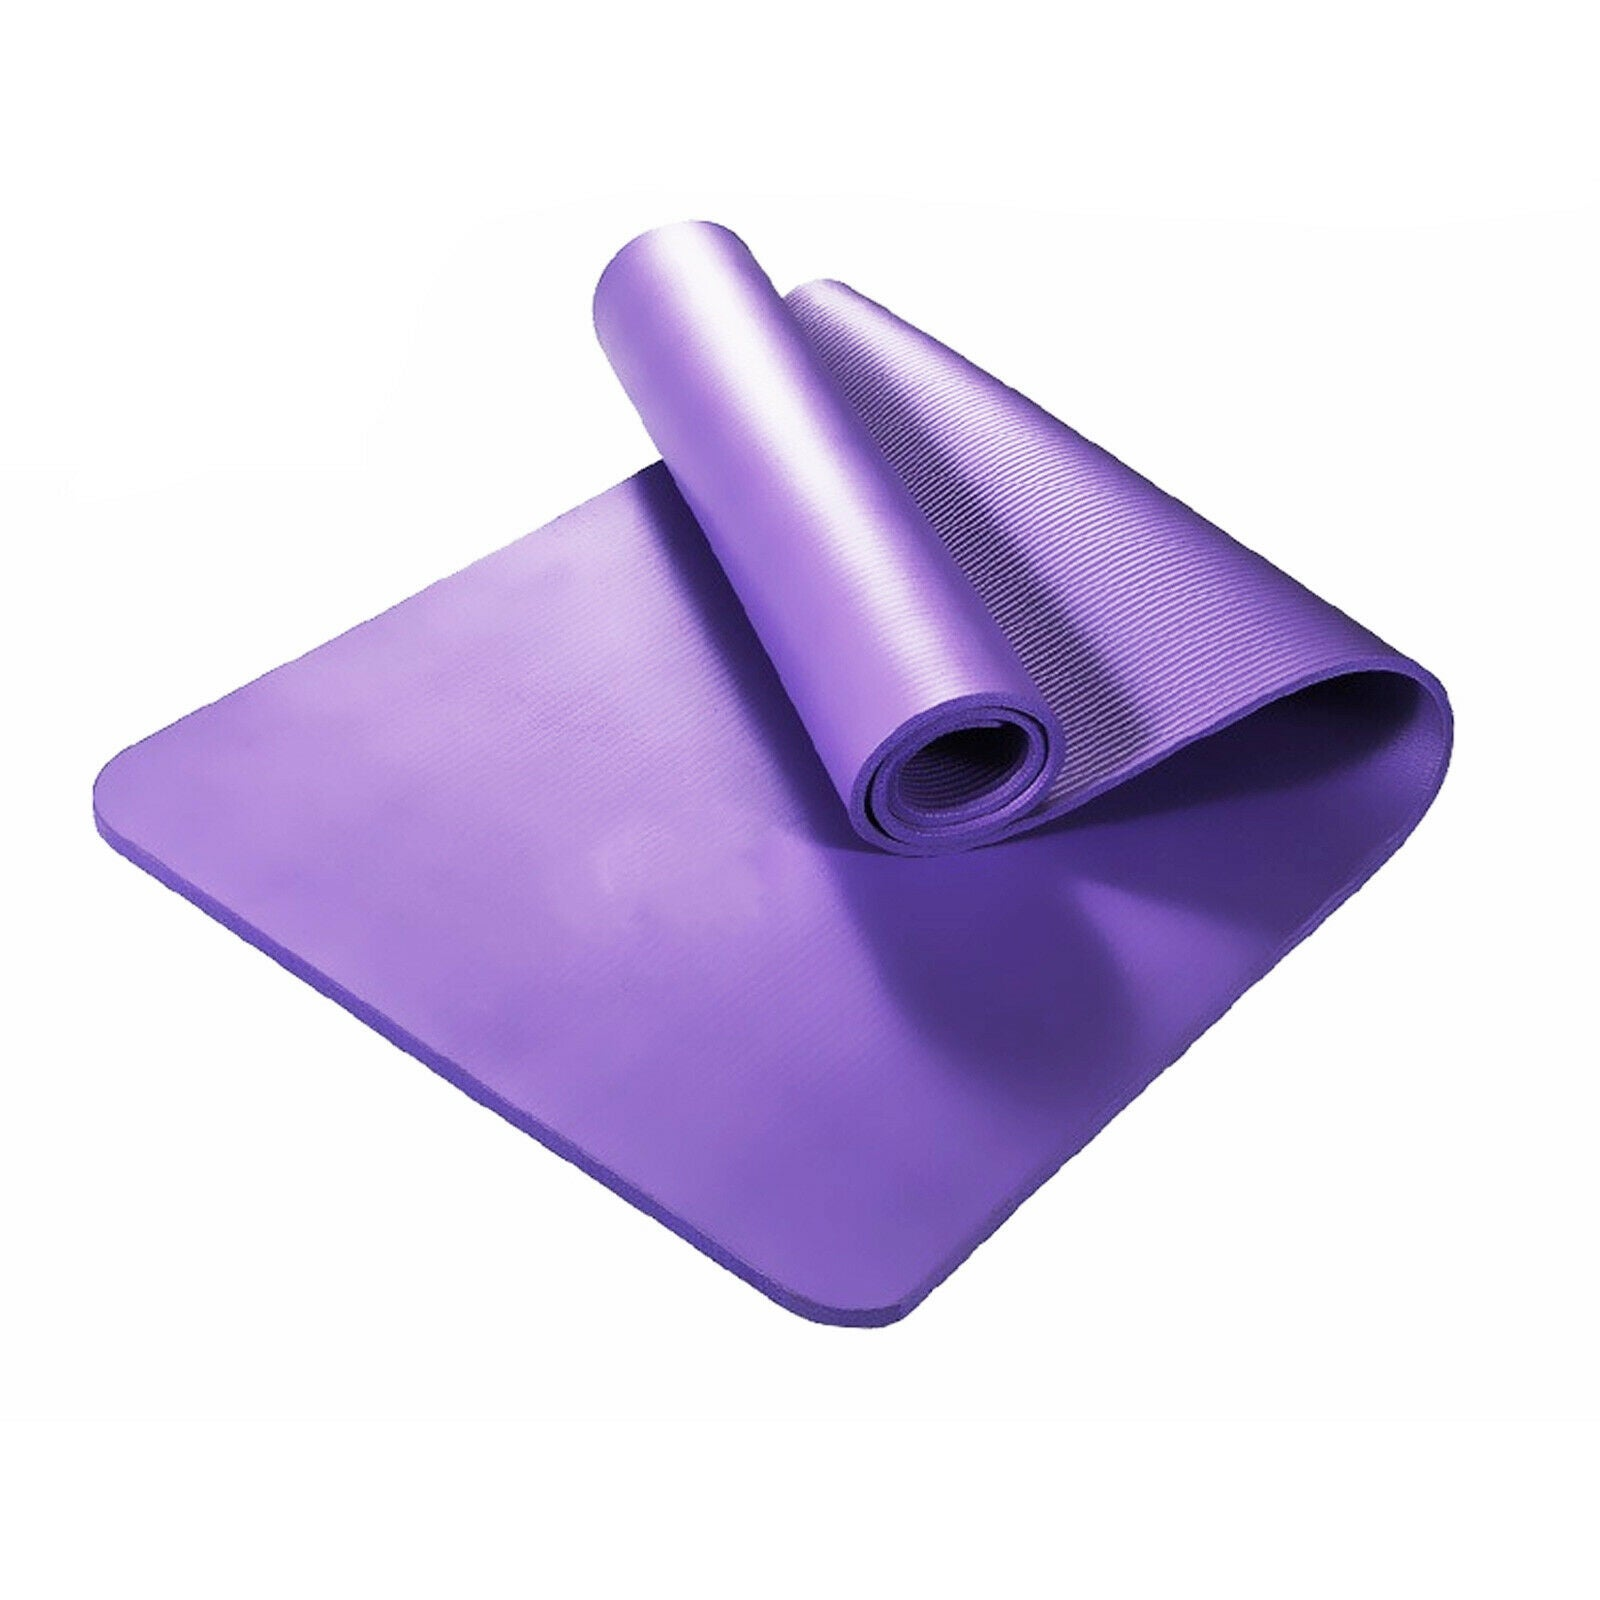 15MM NBR Thick Yoga Mat Pad Nonslip Exercise Fitness Home Gym - Purple